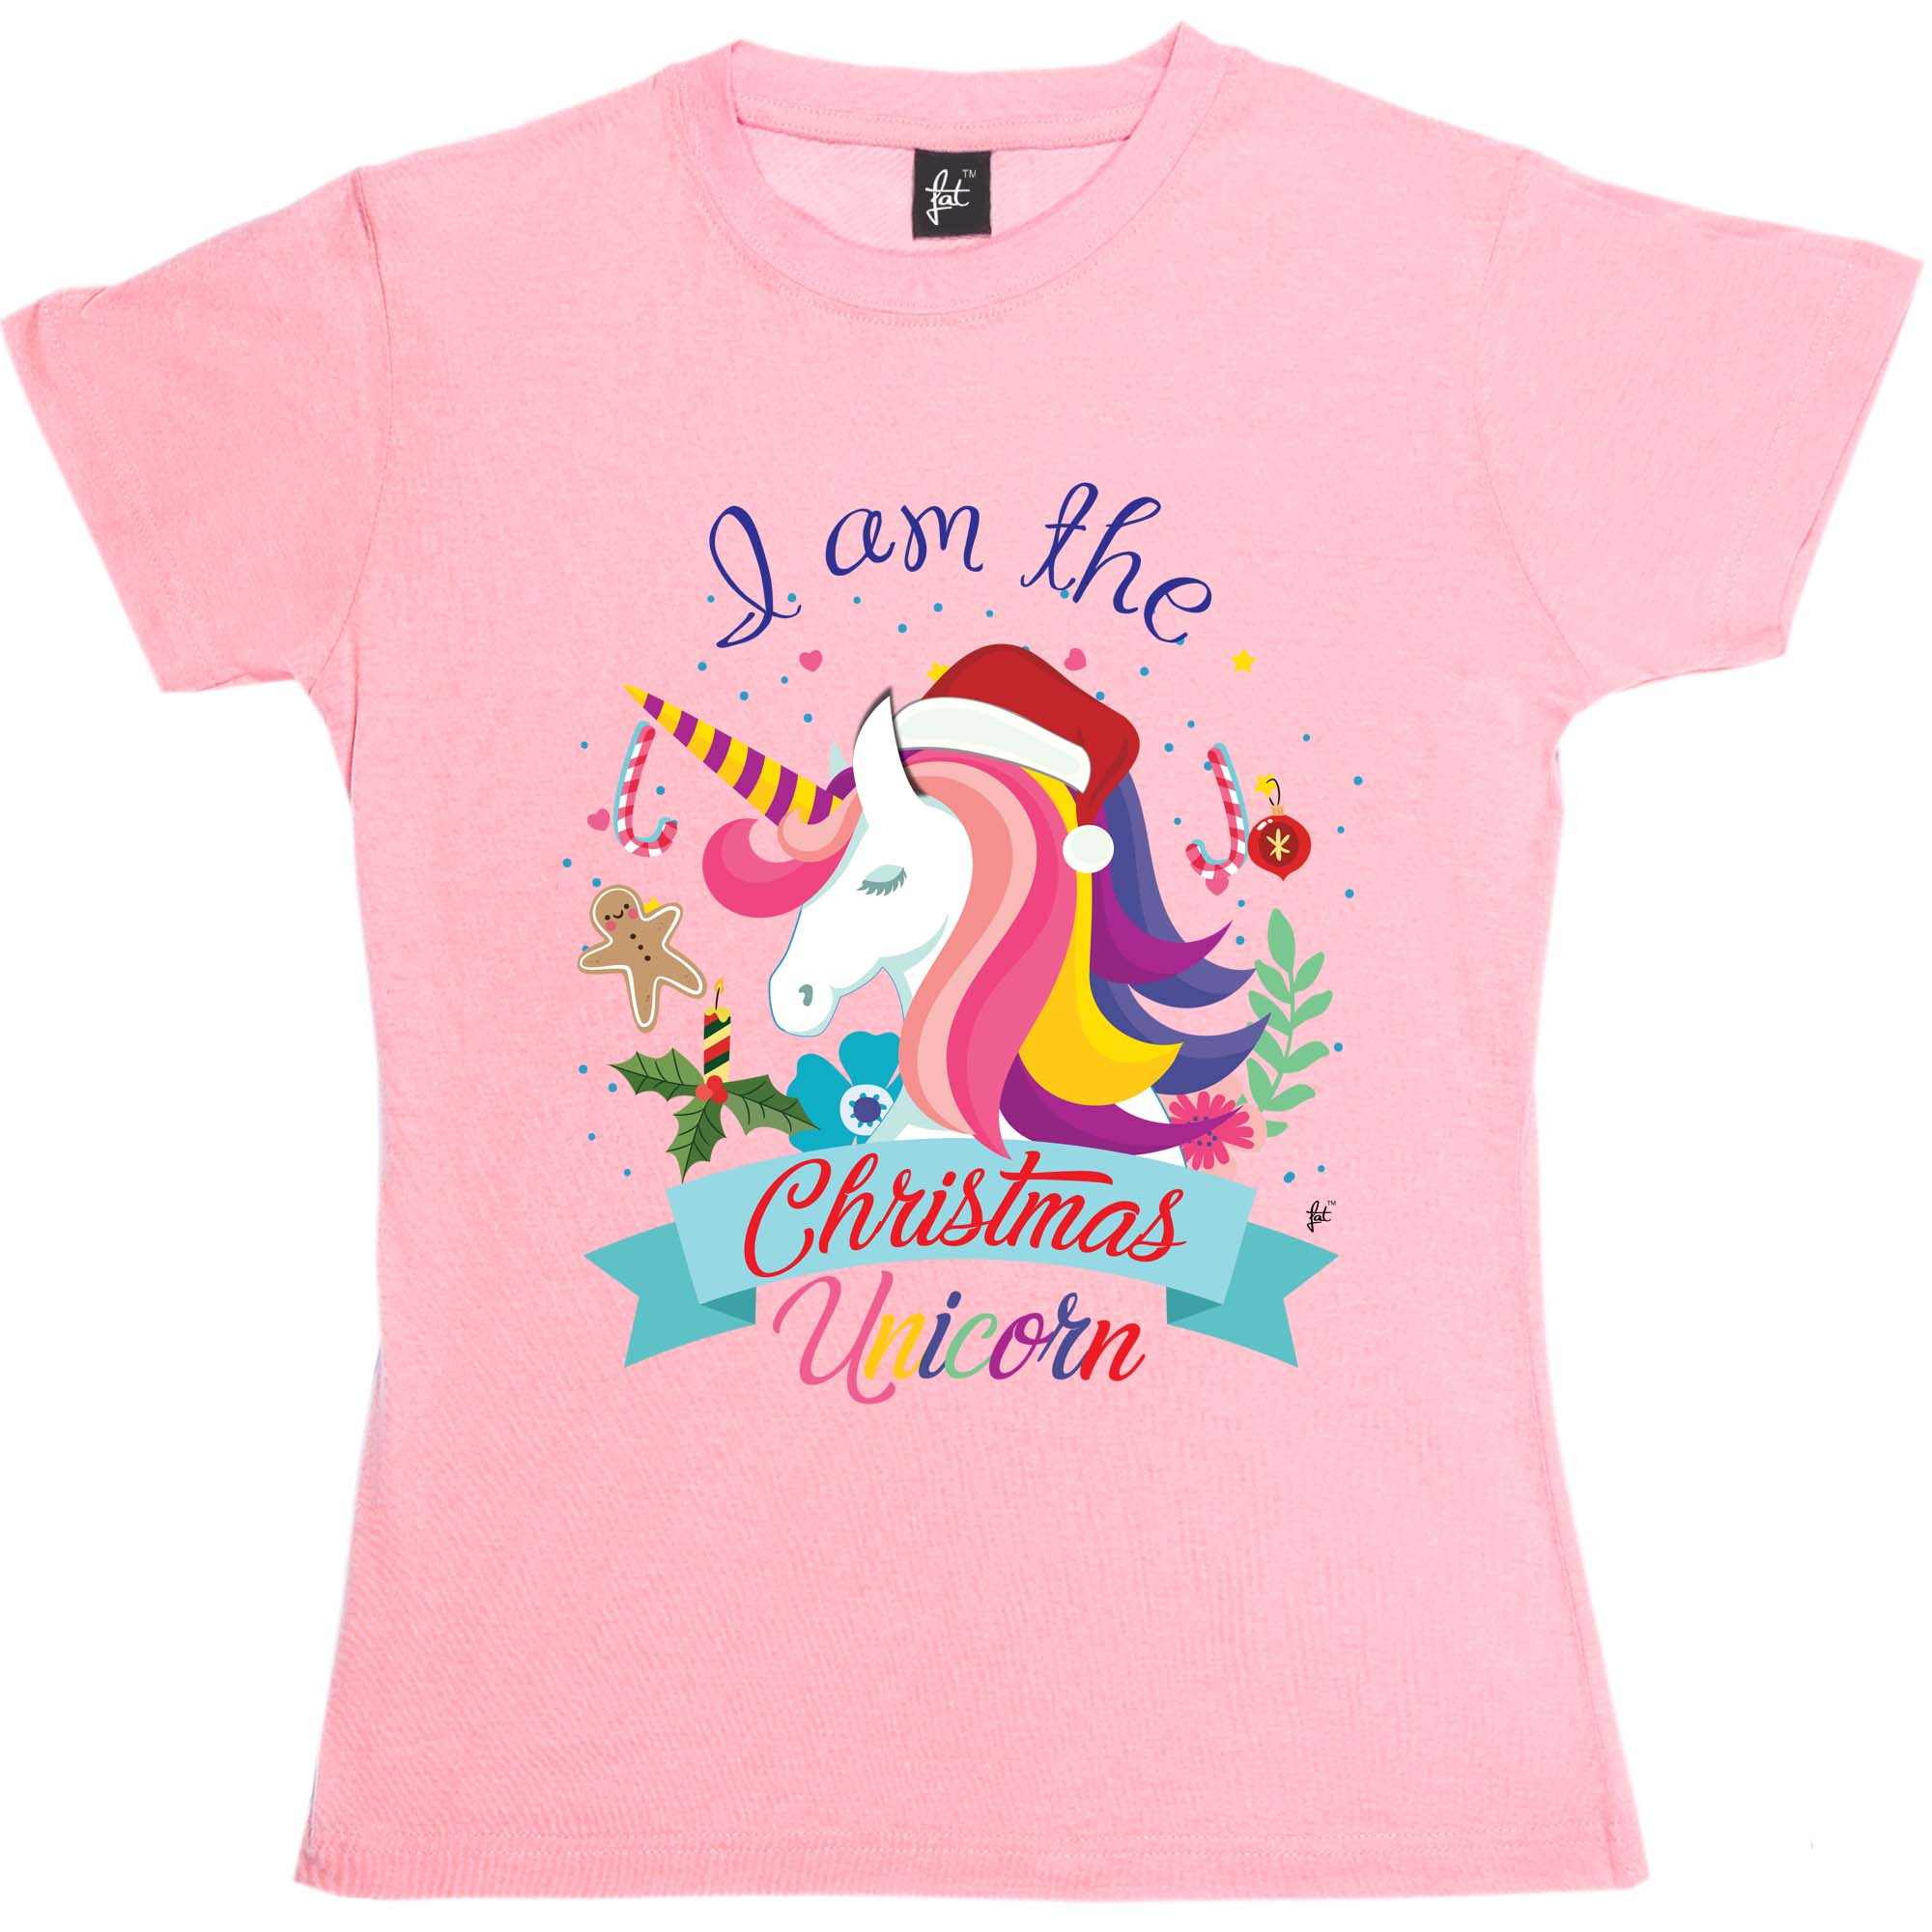 christmas unicorn.jpg